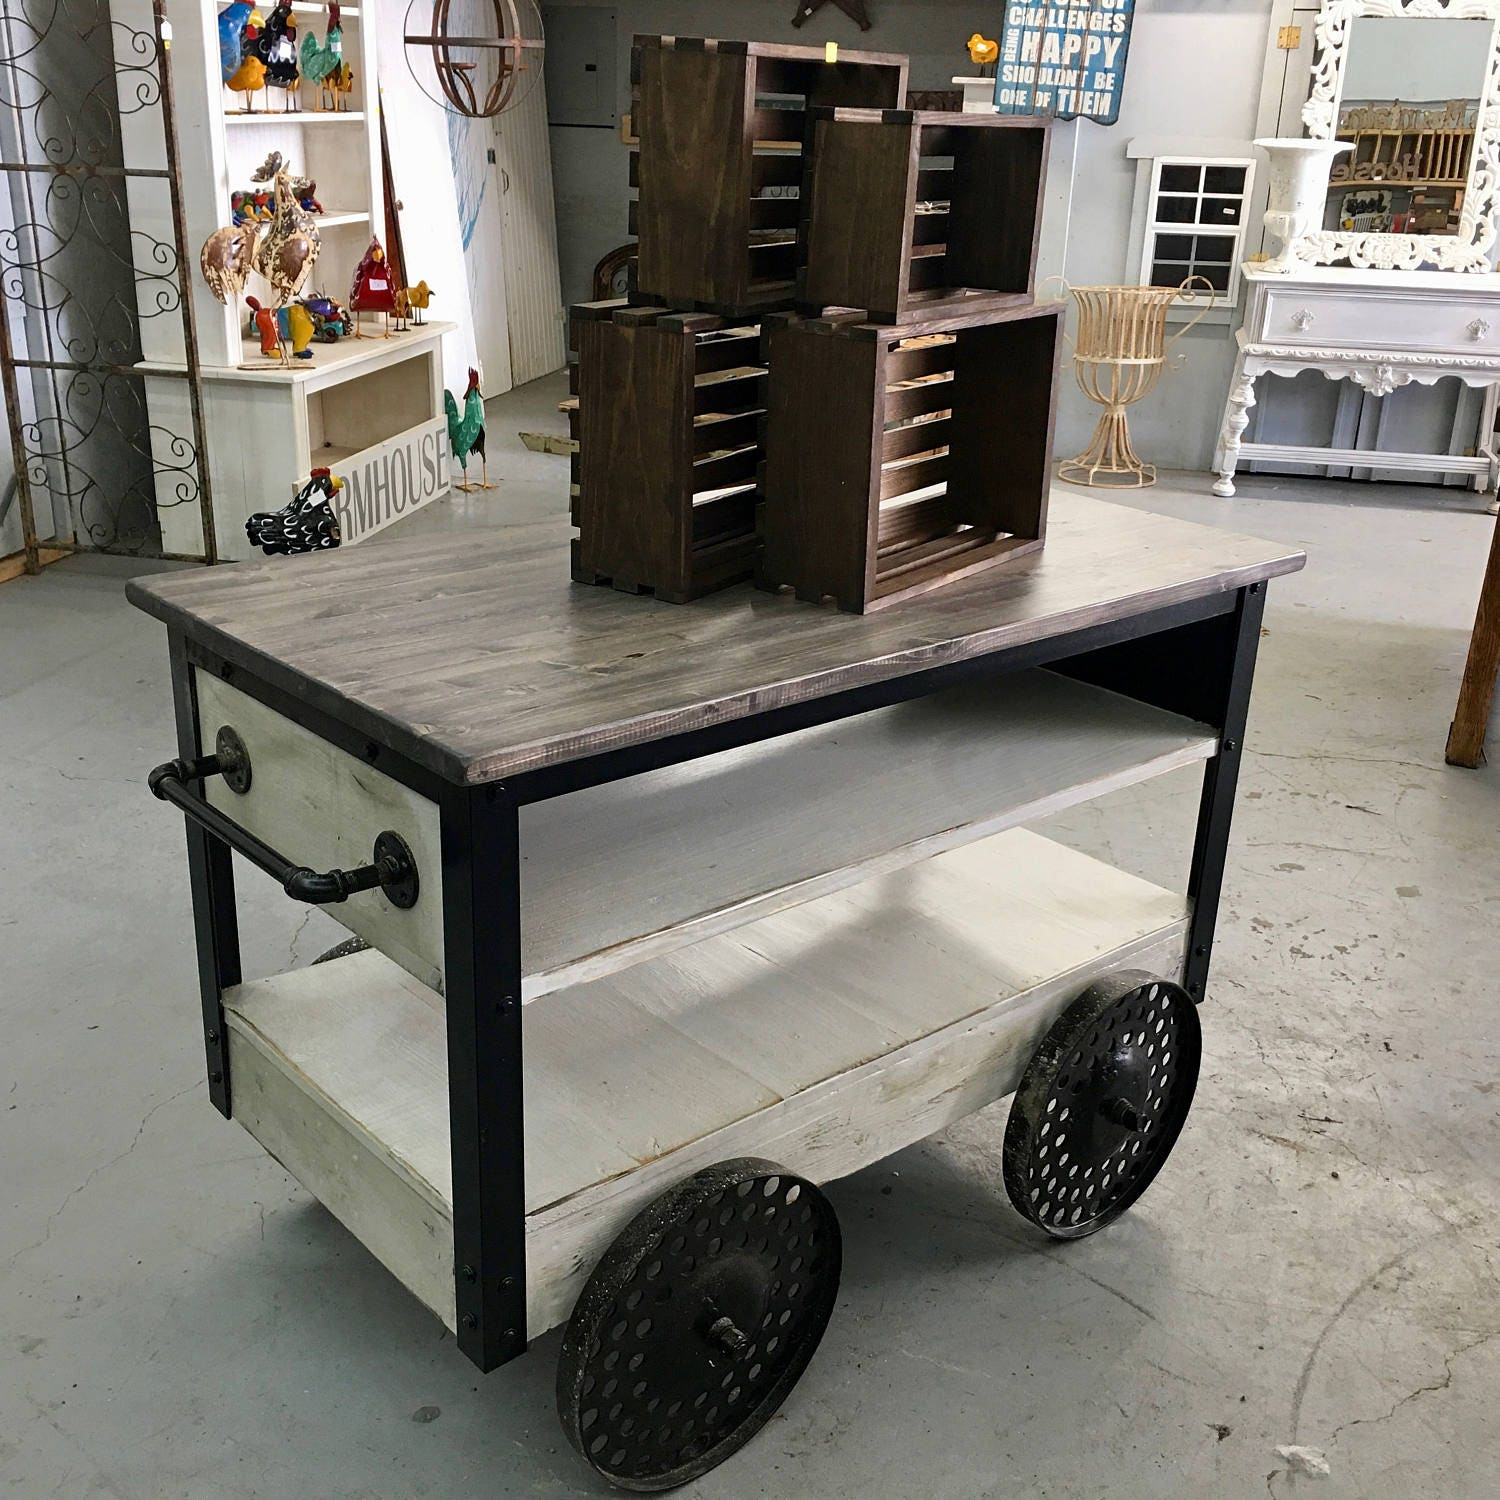 Industrial Kitchen Trolley: Urban Industrial Kitchen Island Cart